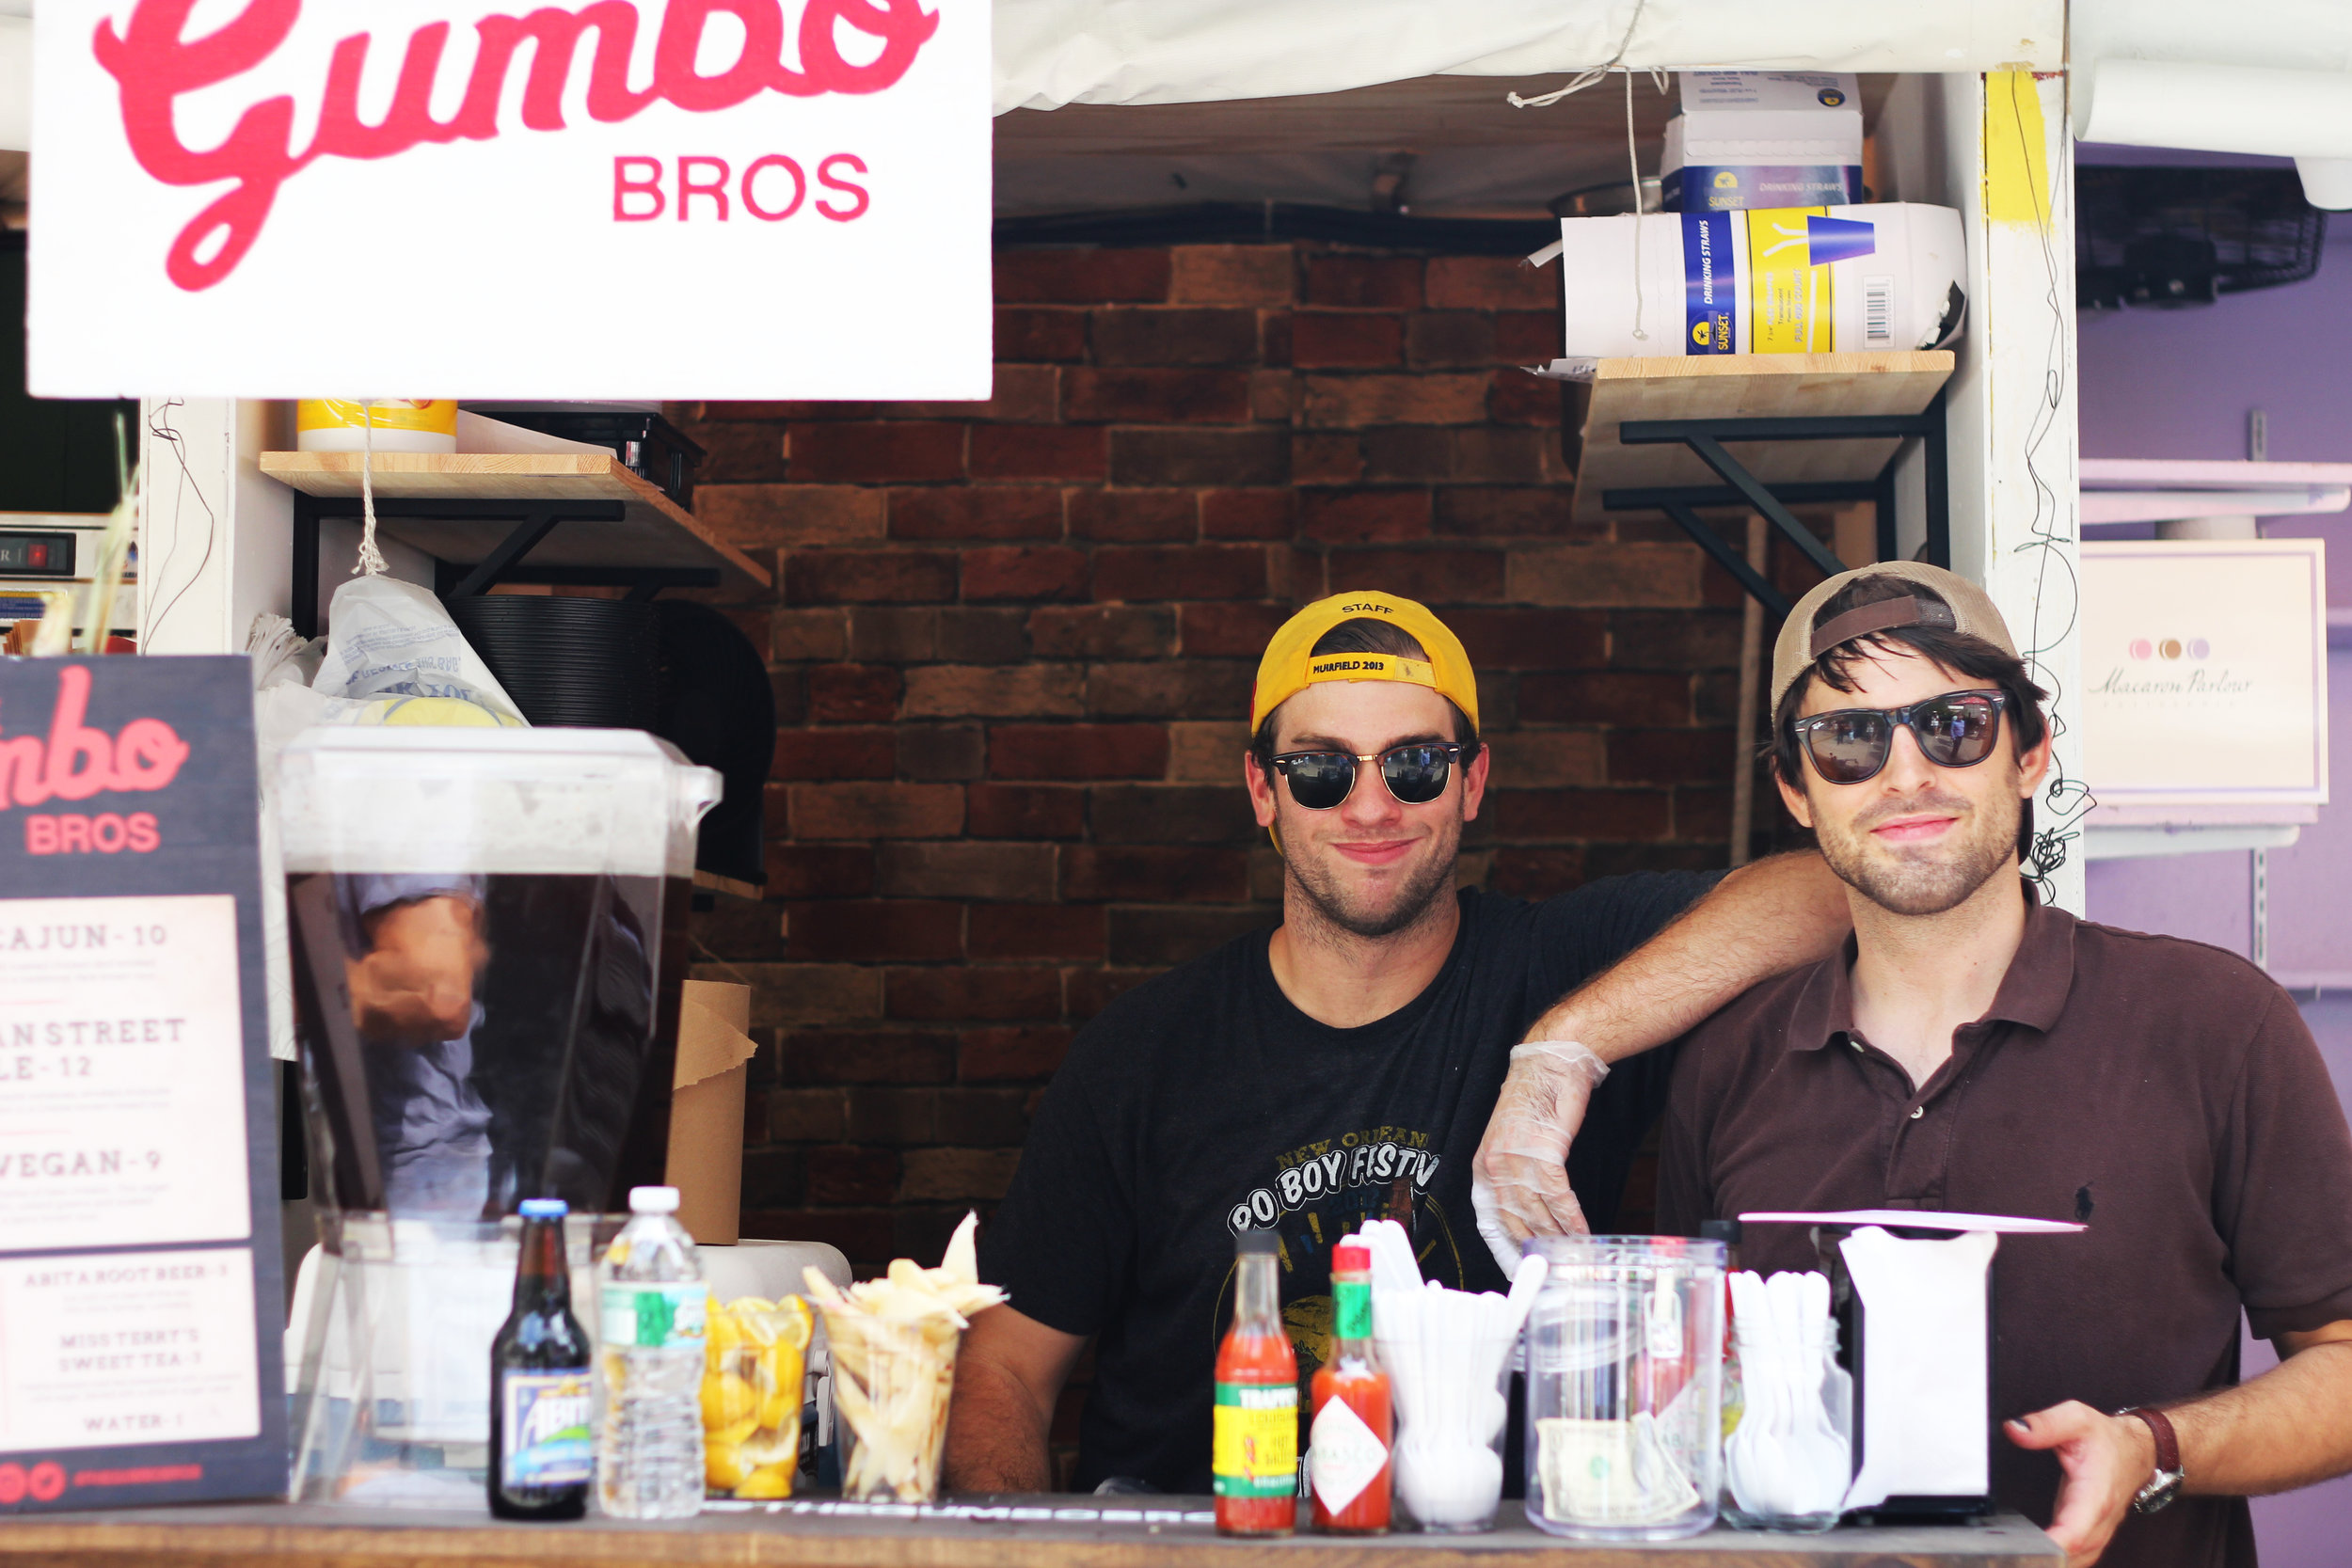 Flashback to 2014, Gumbo Bros debut at Mad. Sq. Eats